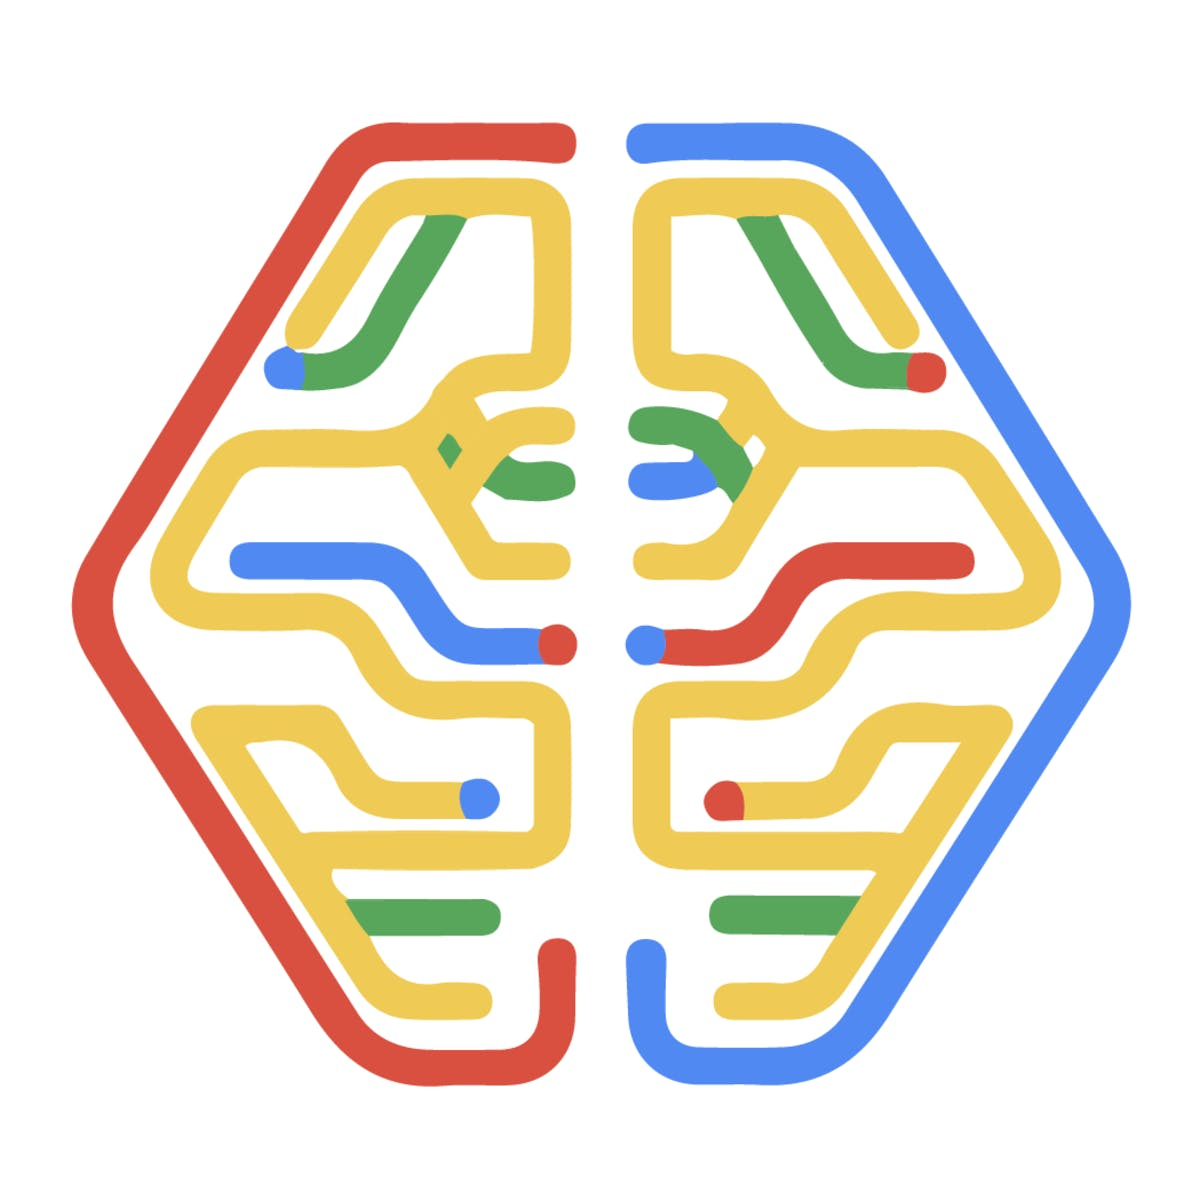 End-to-End Machine Learning with TensorFlow on GCP